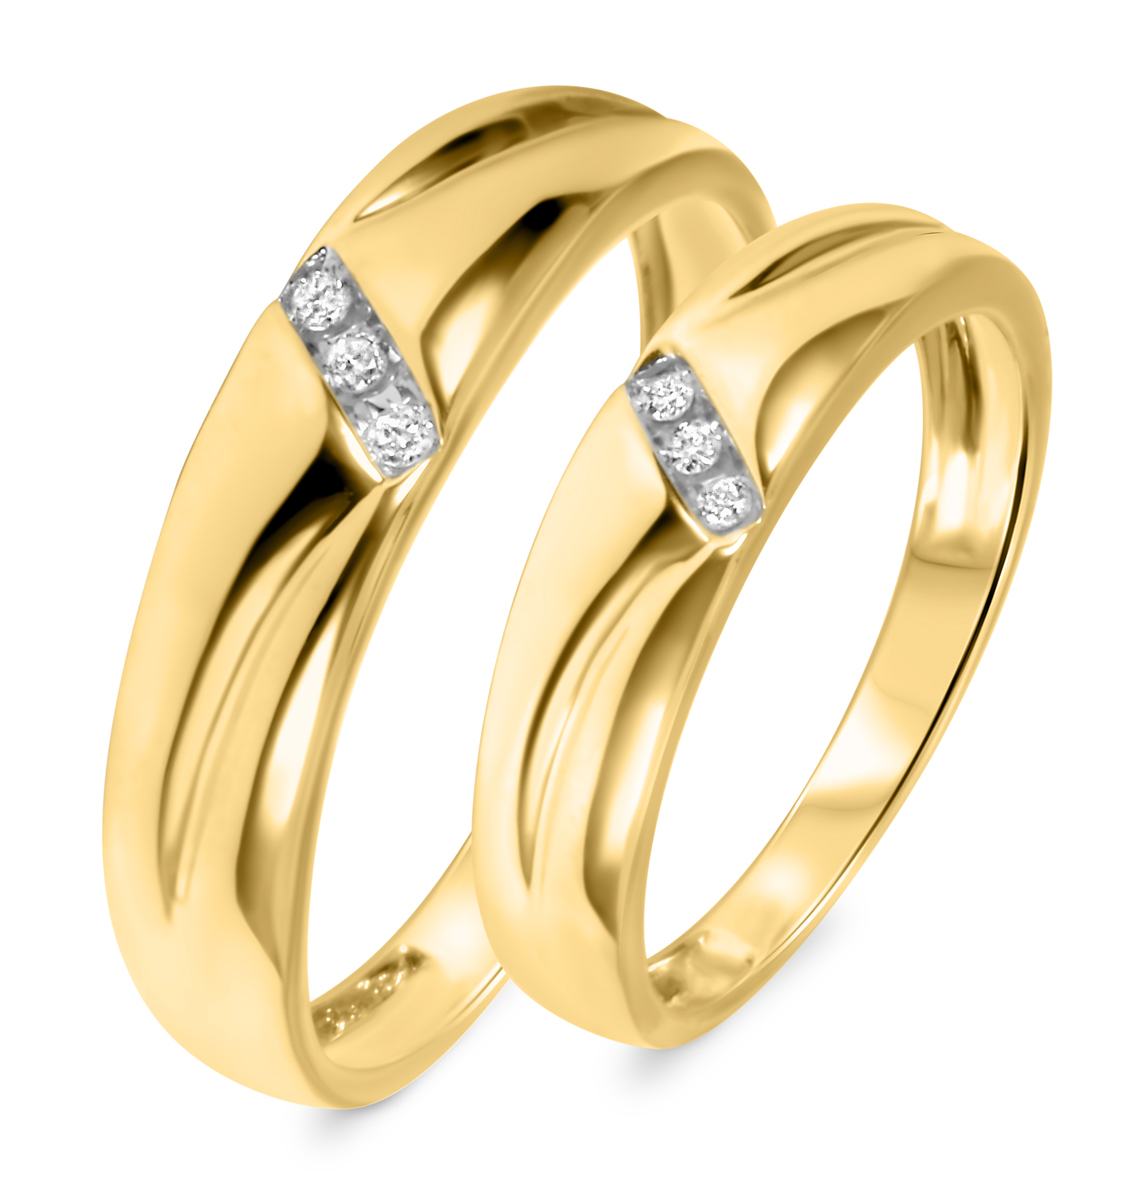 110 ct tw diamond his and hers wedding band set 10k yellow gold tw diamond his and hers wedding band set 10k yellow gold junglespirit